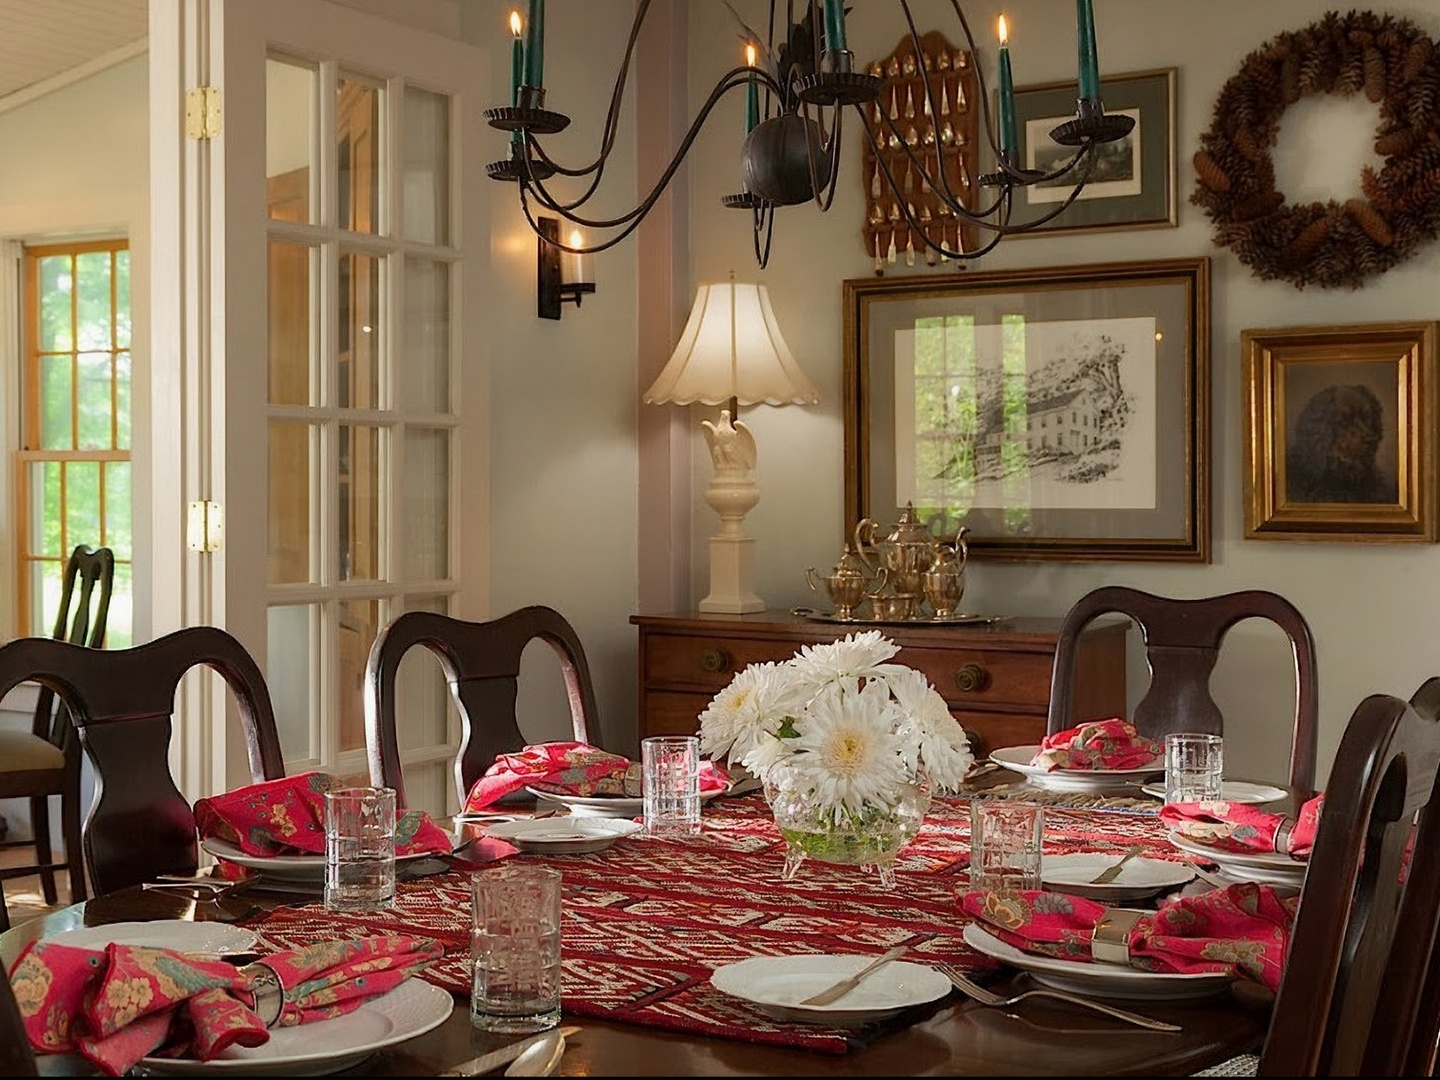 A dining room table with a plate of food at The Inn at Green River.